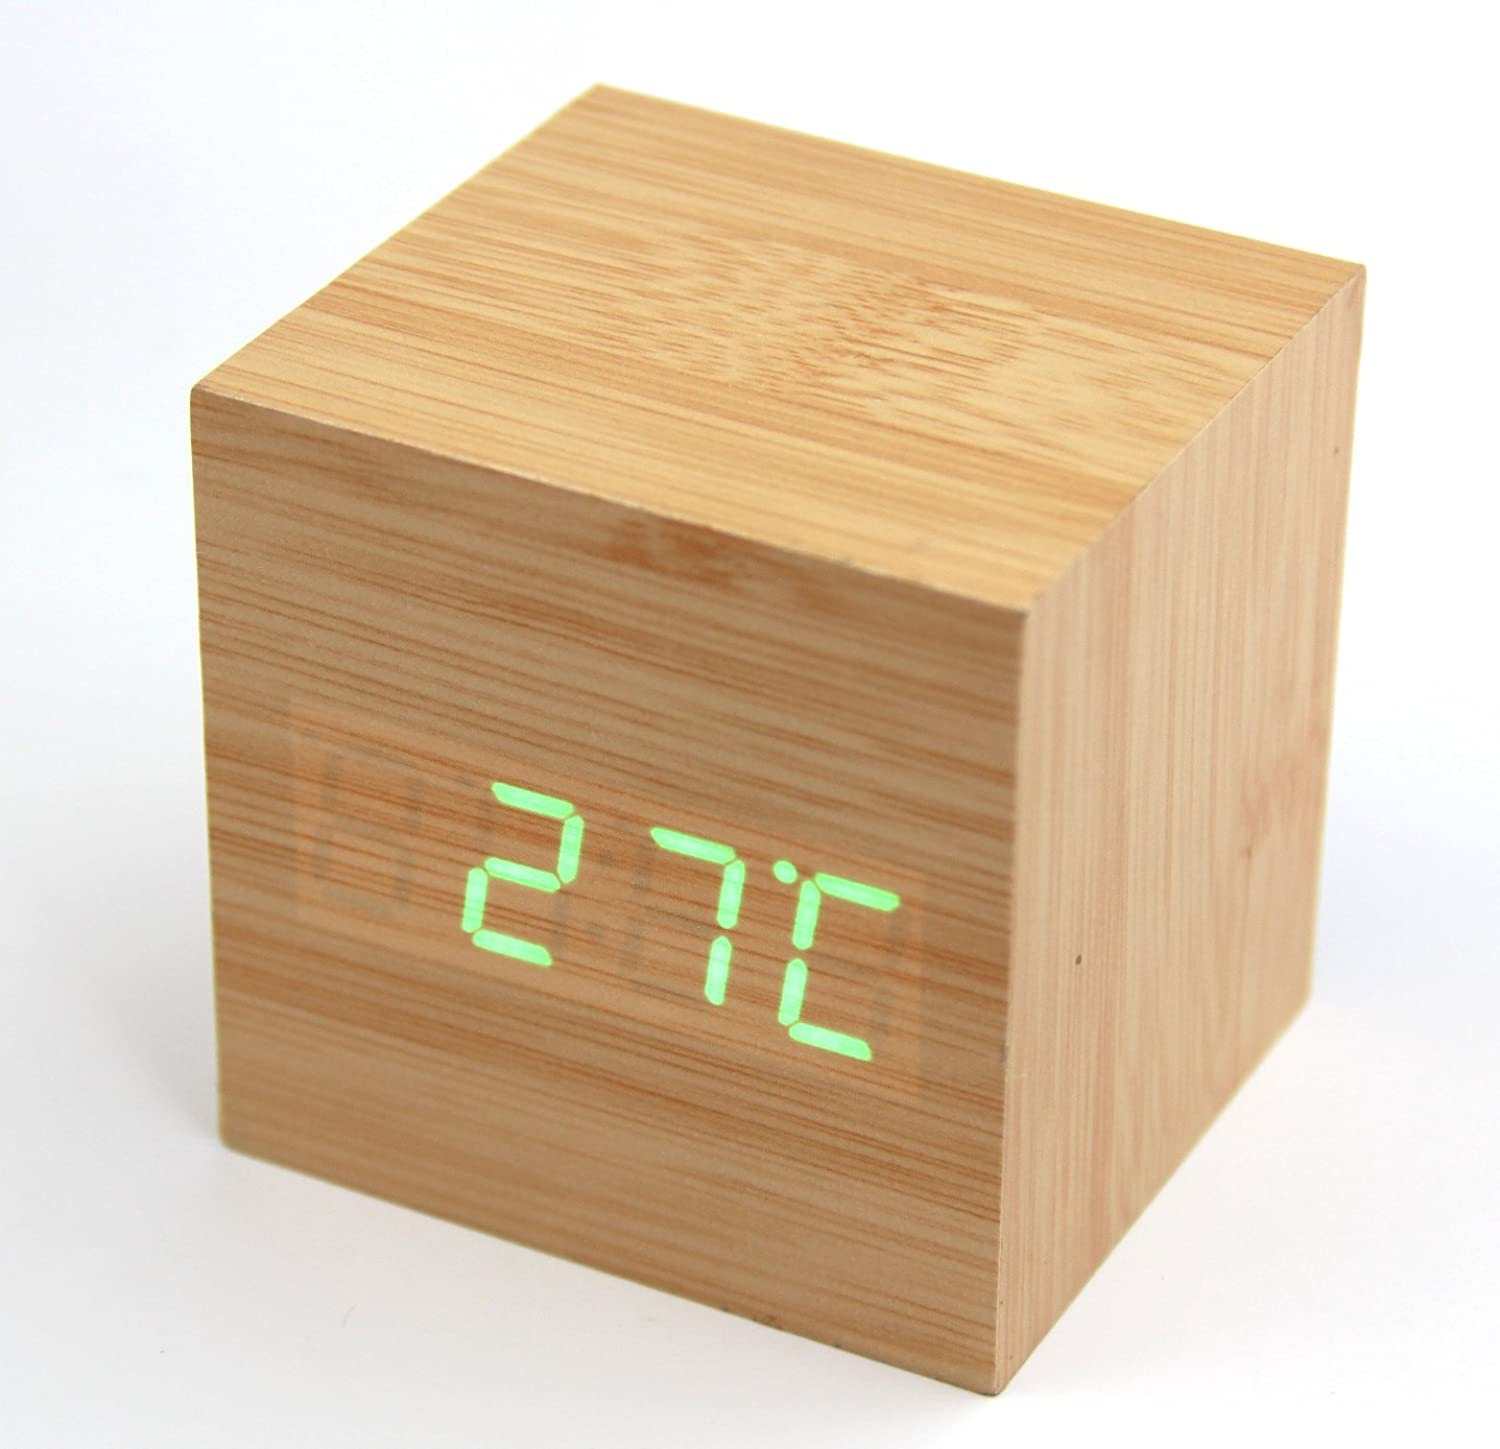 RayLineDo Fashion Bamboo Wood Cube Mini Green LED Wooden Digital Alarm Clock -Time Temperature Date Display - Voice and Touch Activated